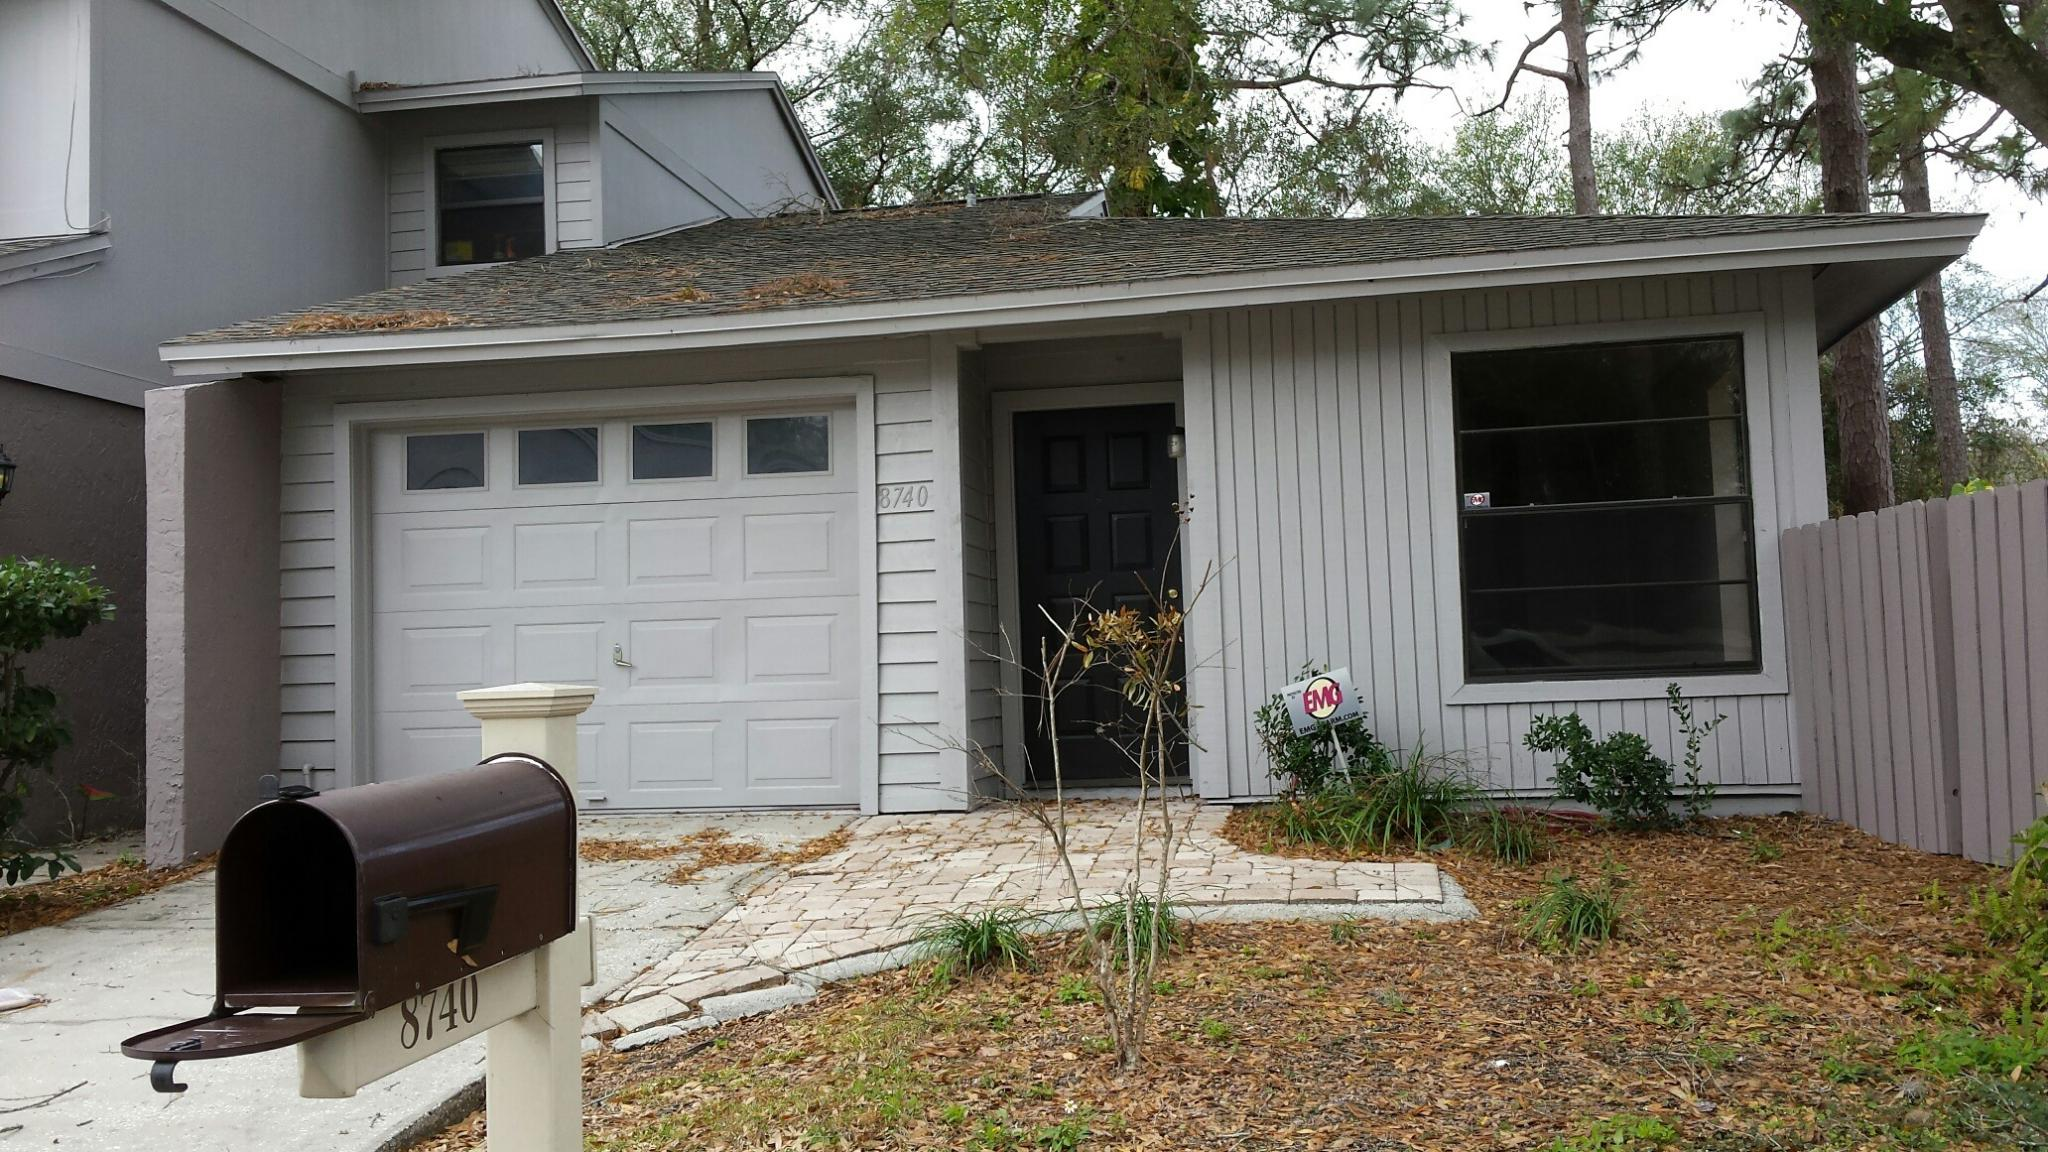 8740 jasmine pond dr for rent tampa fl trulia